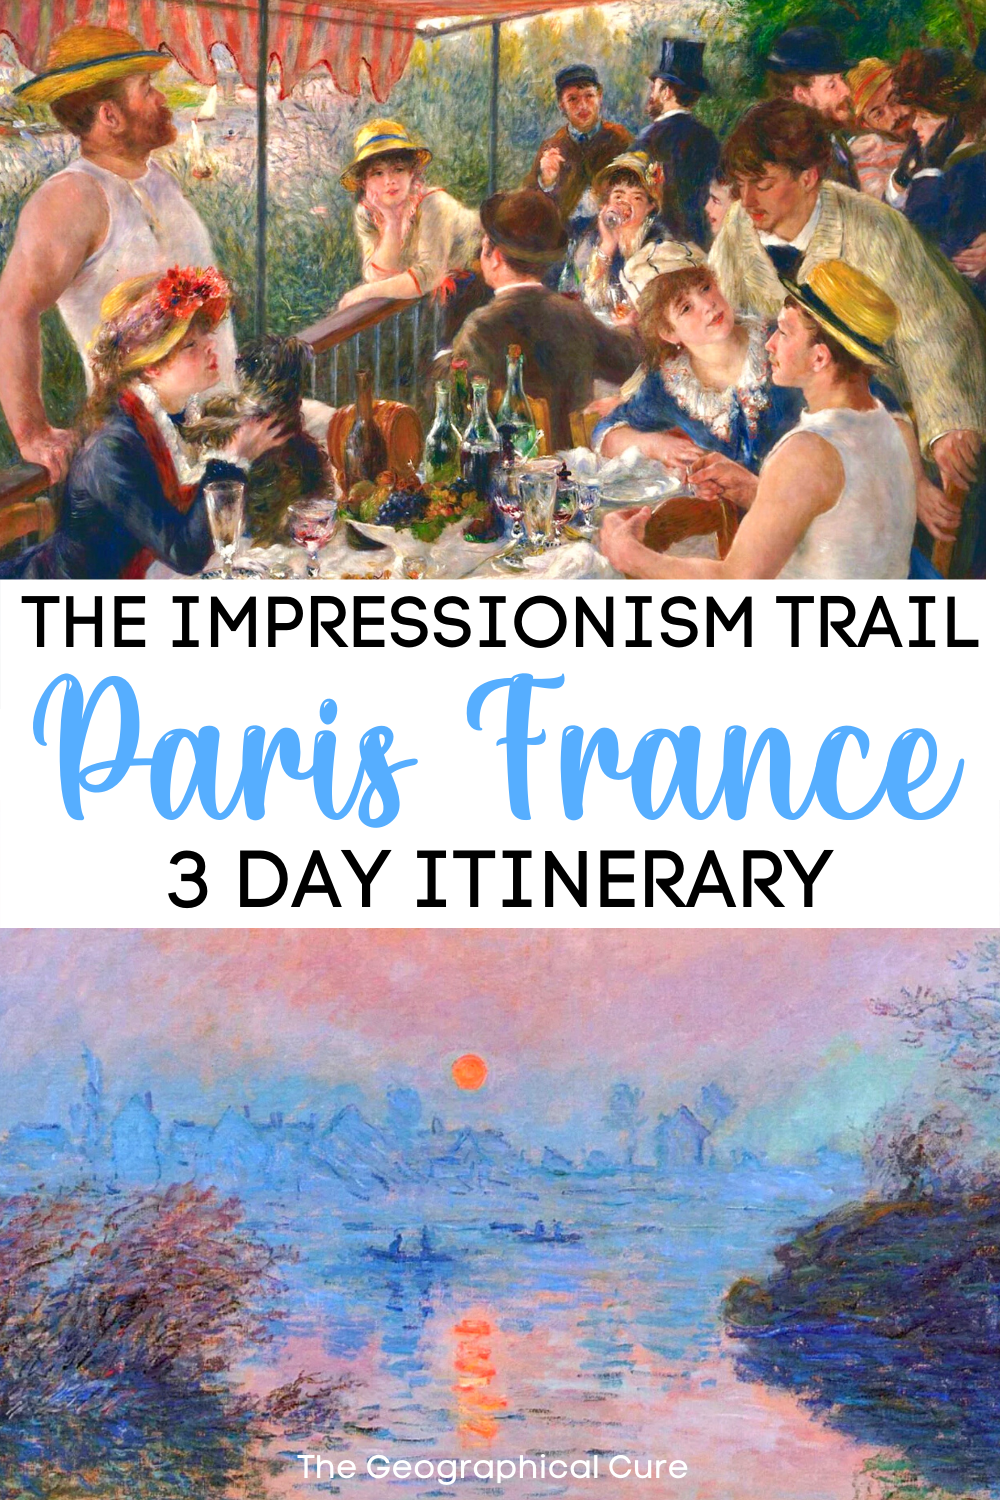 The Impressionism Trail In Paris, 3 Day Itinerary